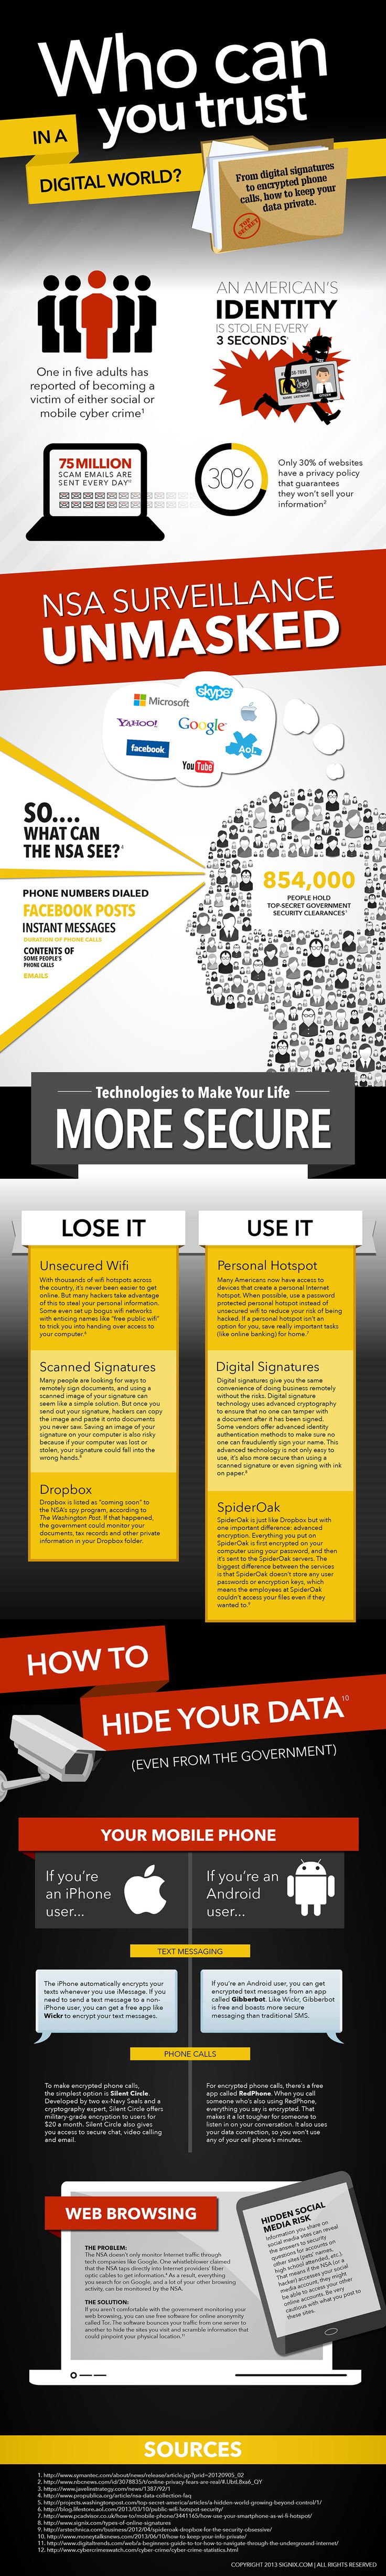 Who Can You Trust in a Digital World? From #Digital Signatures to Encrypted Calls. - #infographic #technology